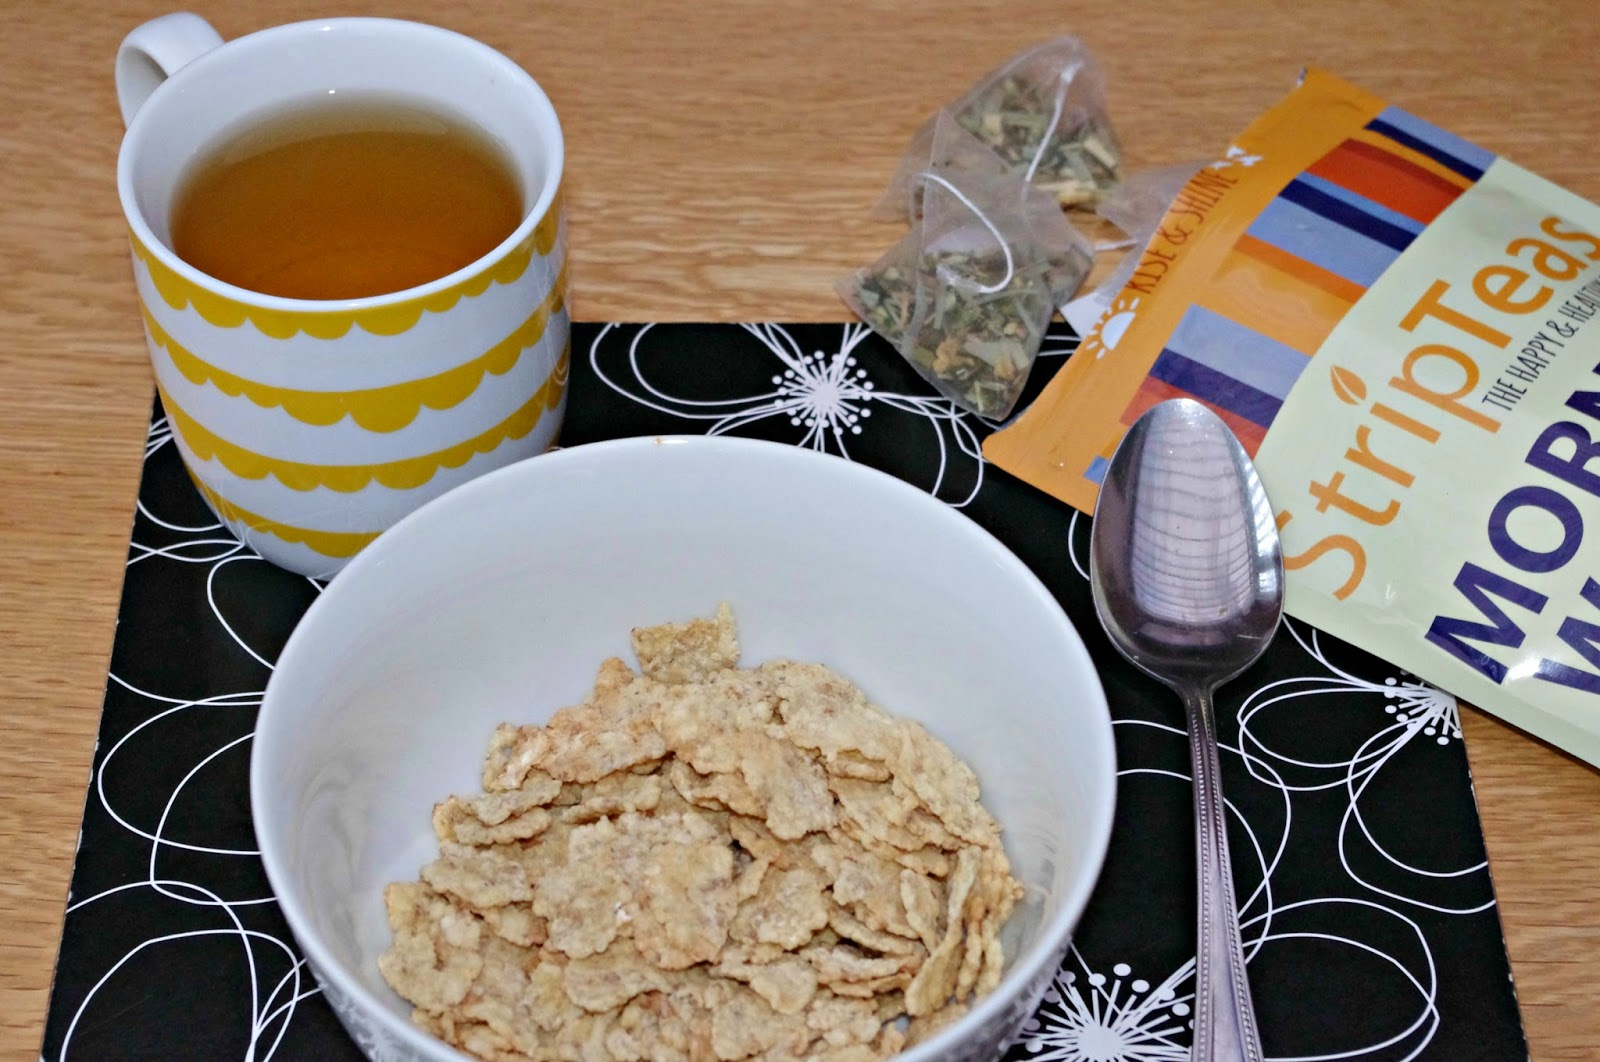 Cereal and Tea